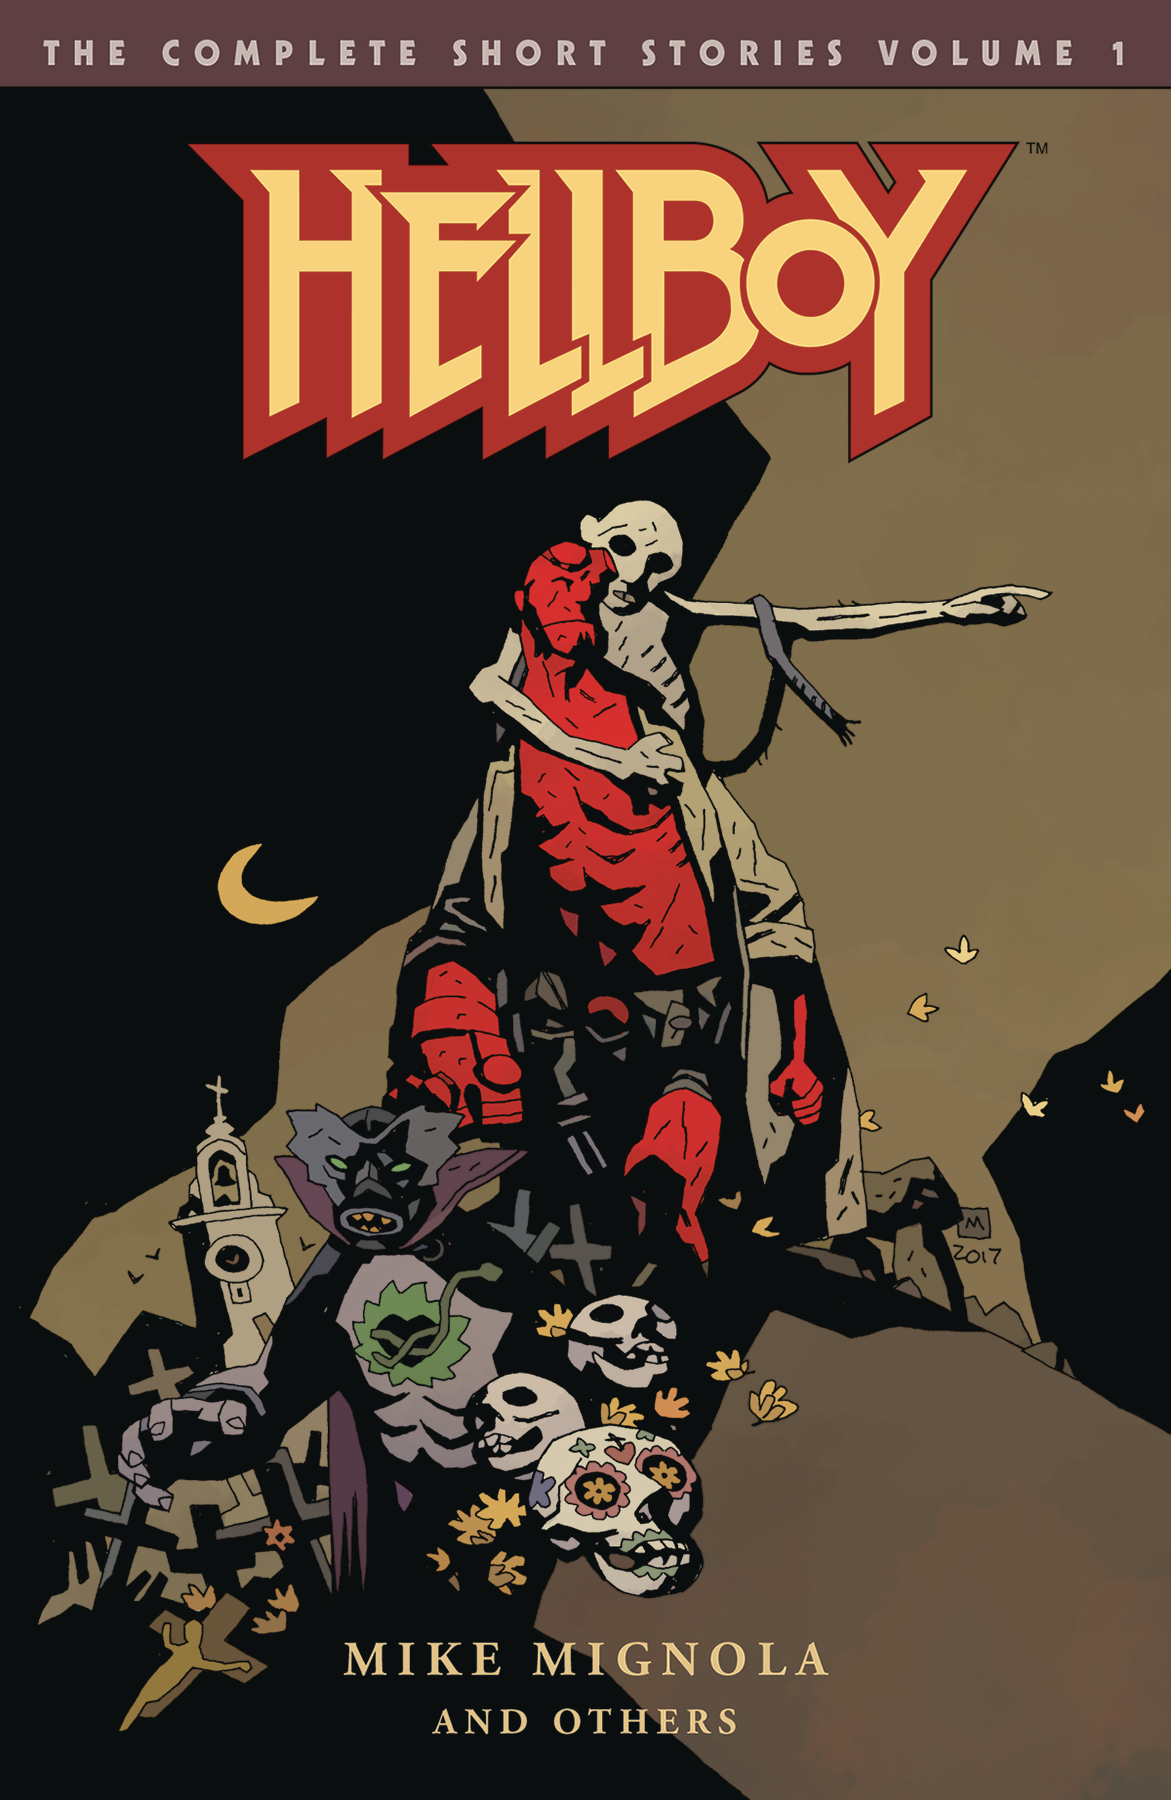 HELLBOY COMPLETE SHORT STORIES TP VOL 01 (FEB180036)